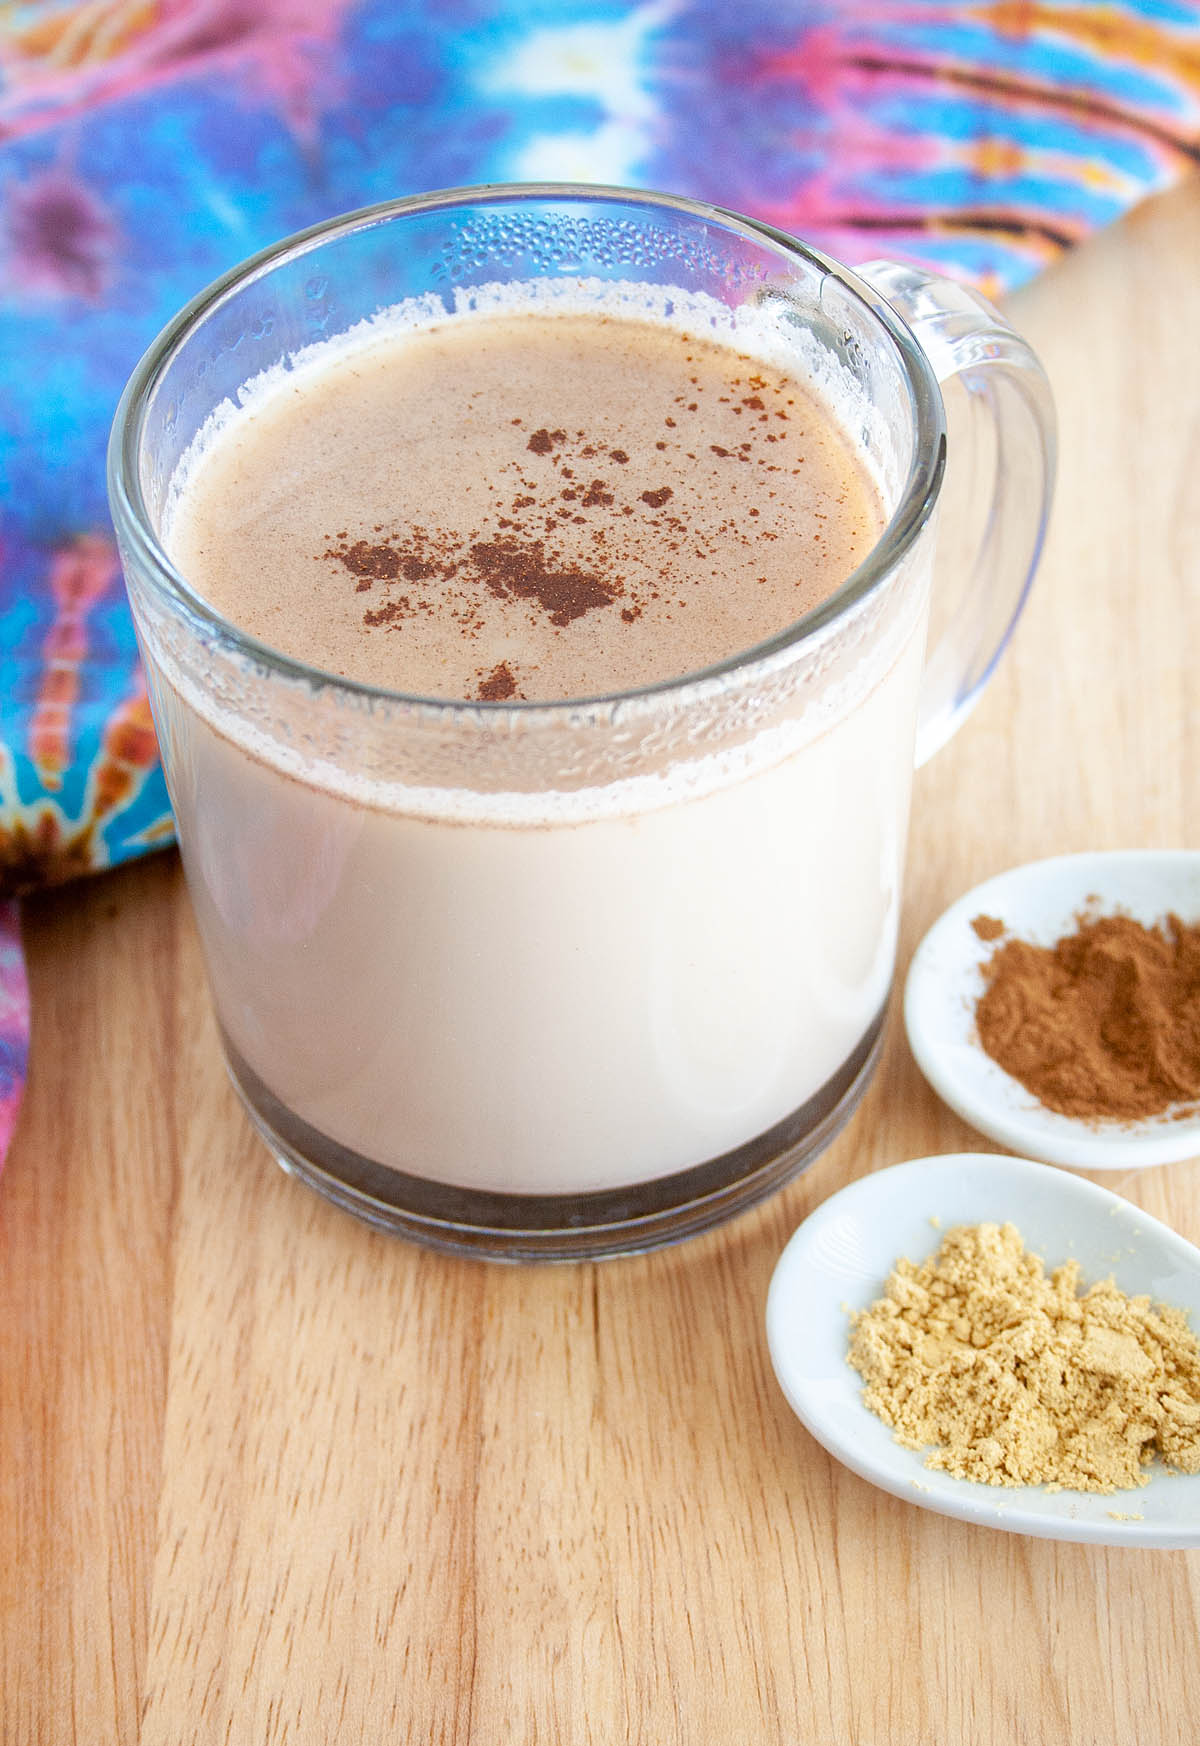 Spiced Almond Milk with spoonfuls of ground ginger and cinnamon.